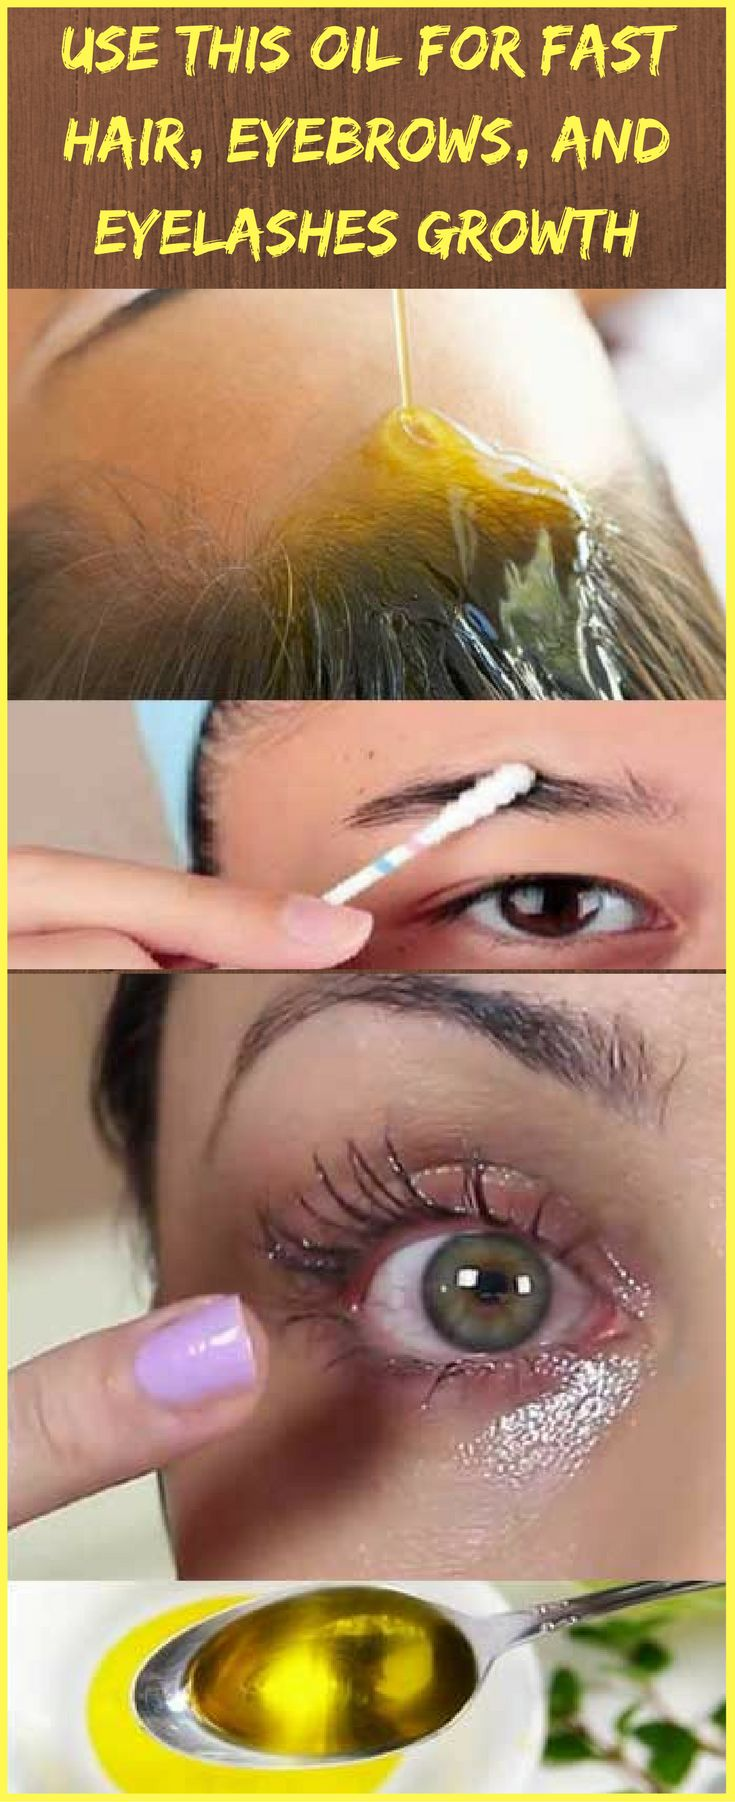 Ladies, you can use this AMAZING oil for fast hair, eyebrows and eyelashes GROWTH!